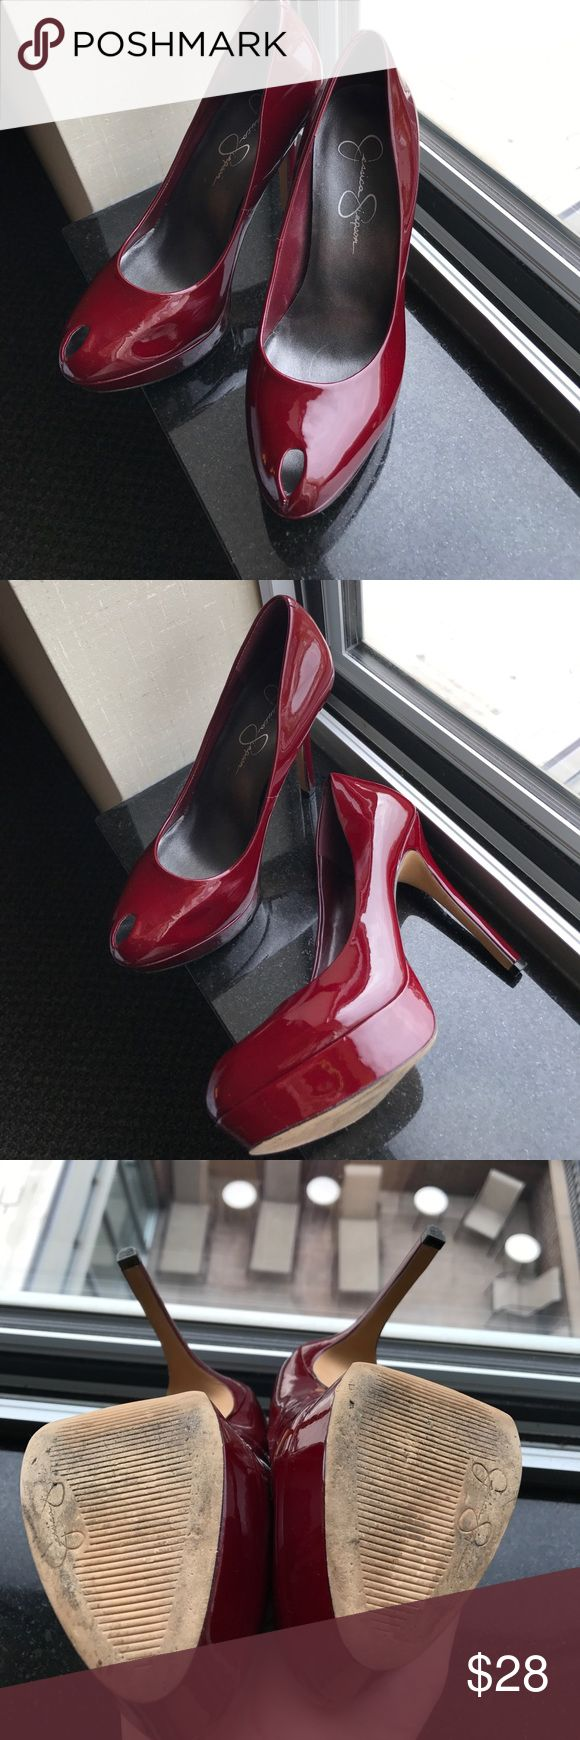 Jessica Simpson red peep toe heels Peep toe red heels 👠 by jessica Simpson   Size 6 Jessica Simpson Shoes